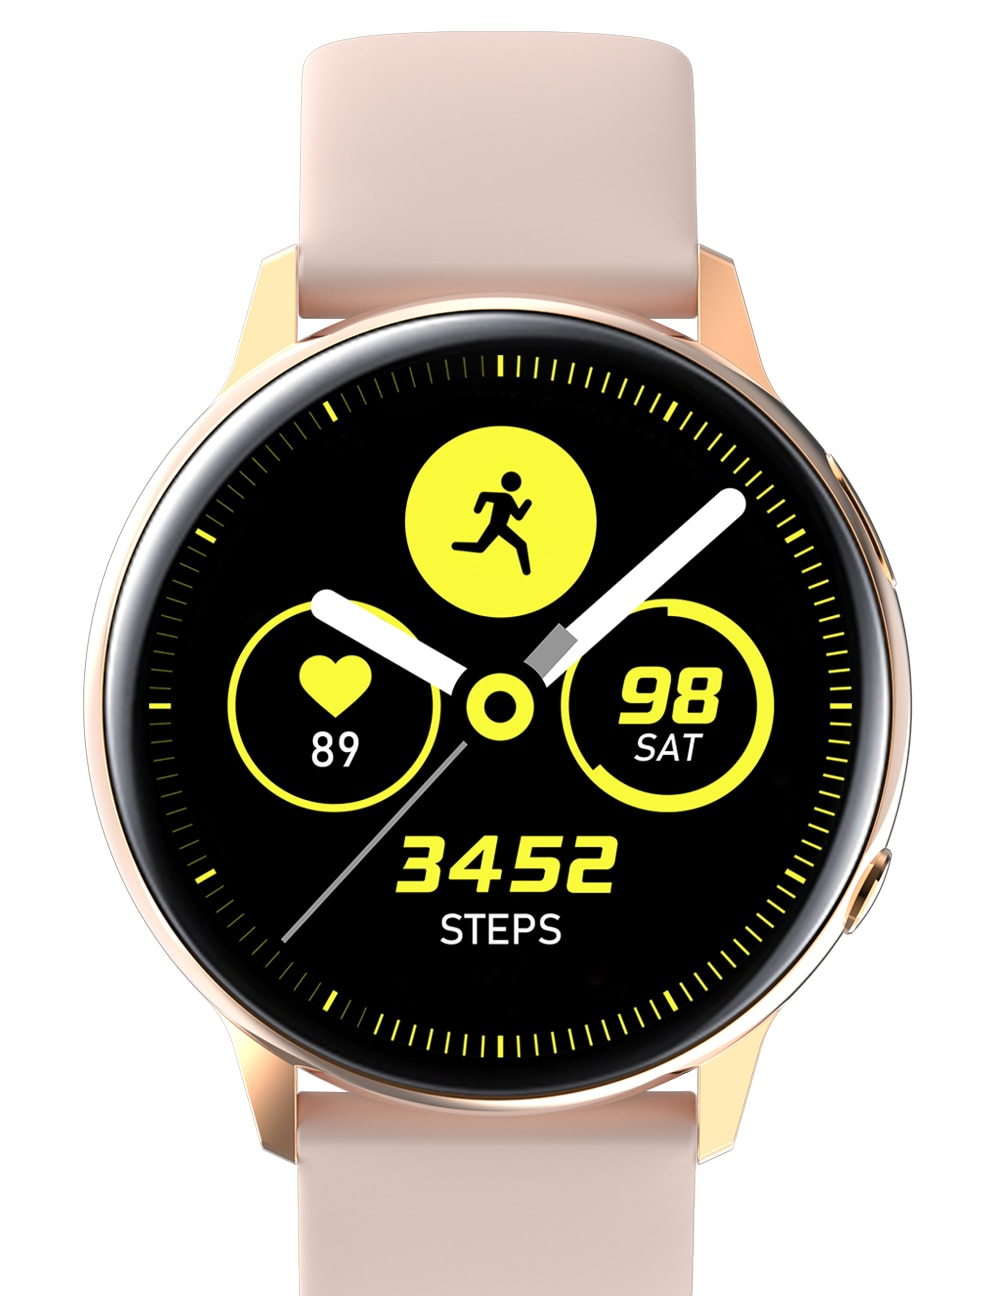 G20 Smartwatch with Wireless Charging, Fitness Tracker, Heart-Rate Sensor, Blood Oxygen Check (Black)